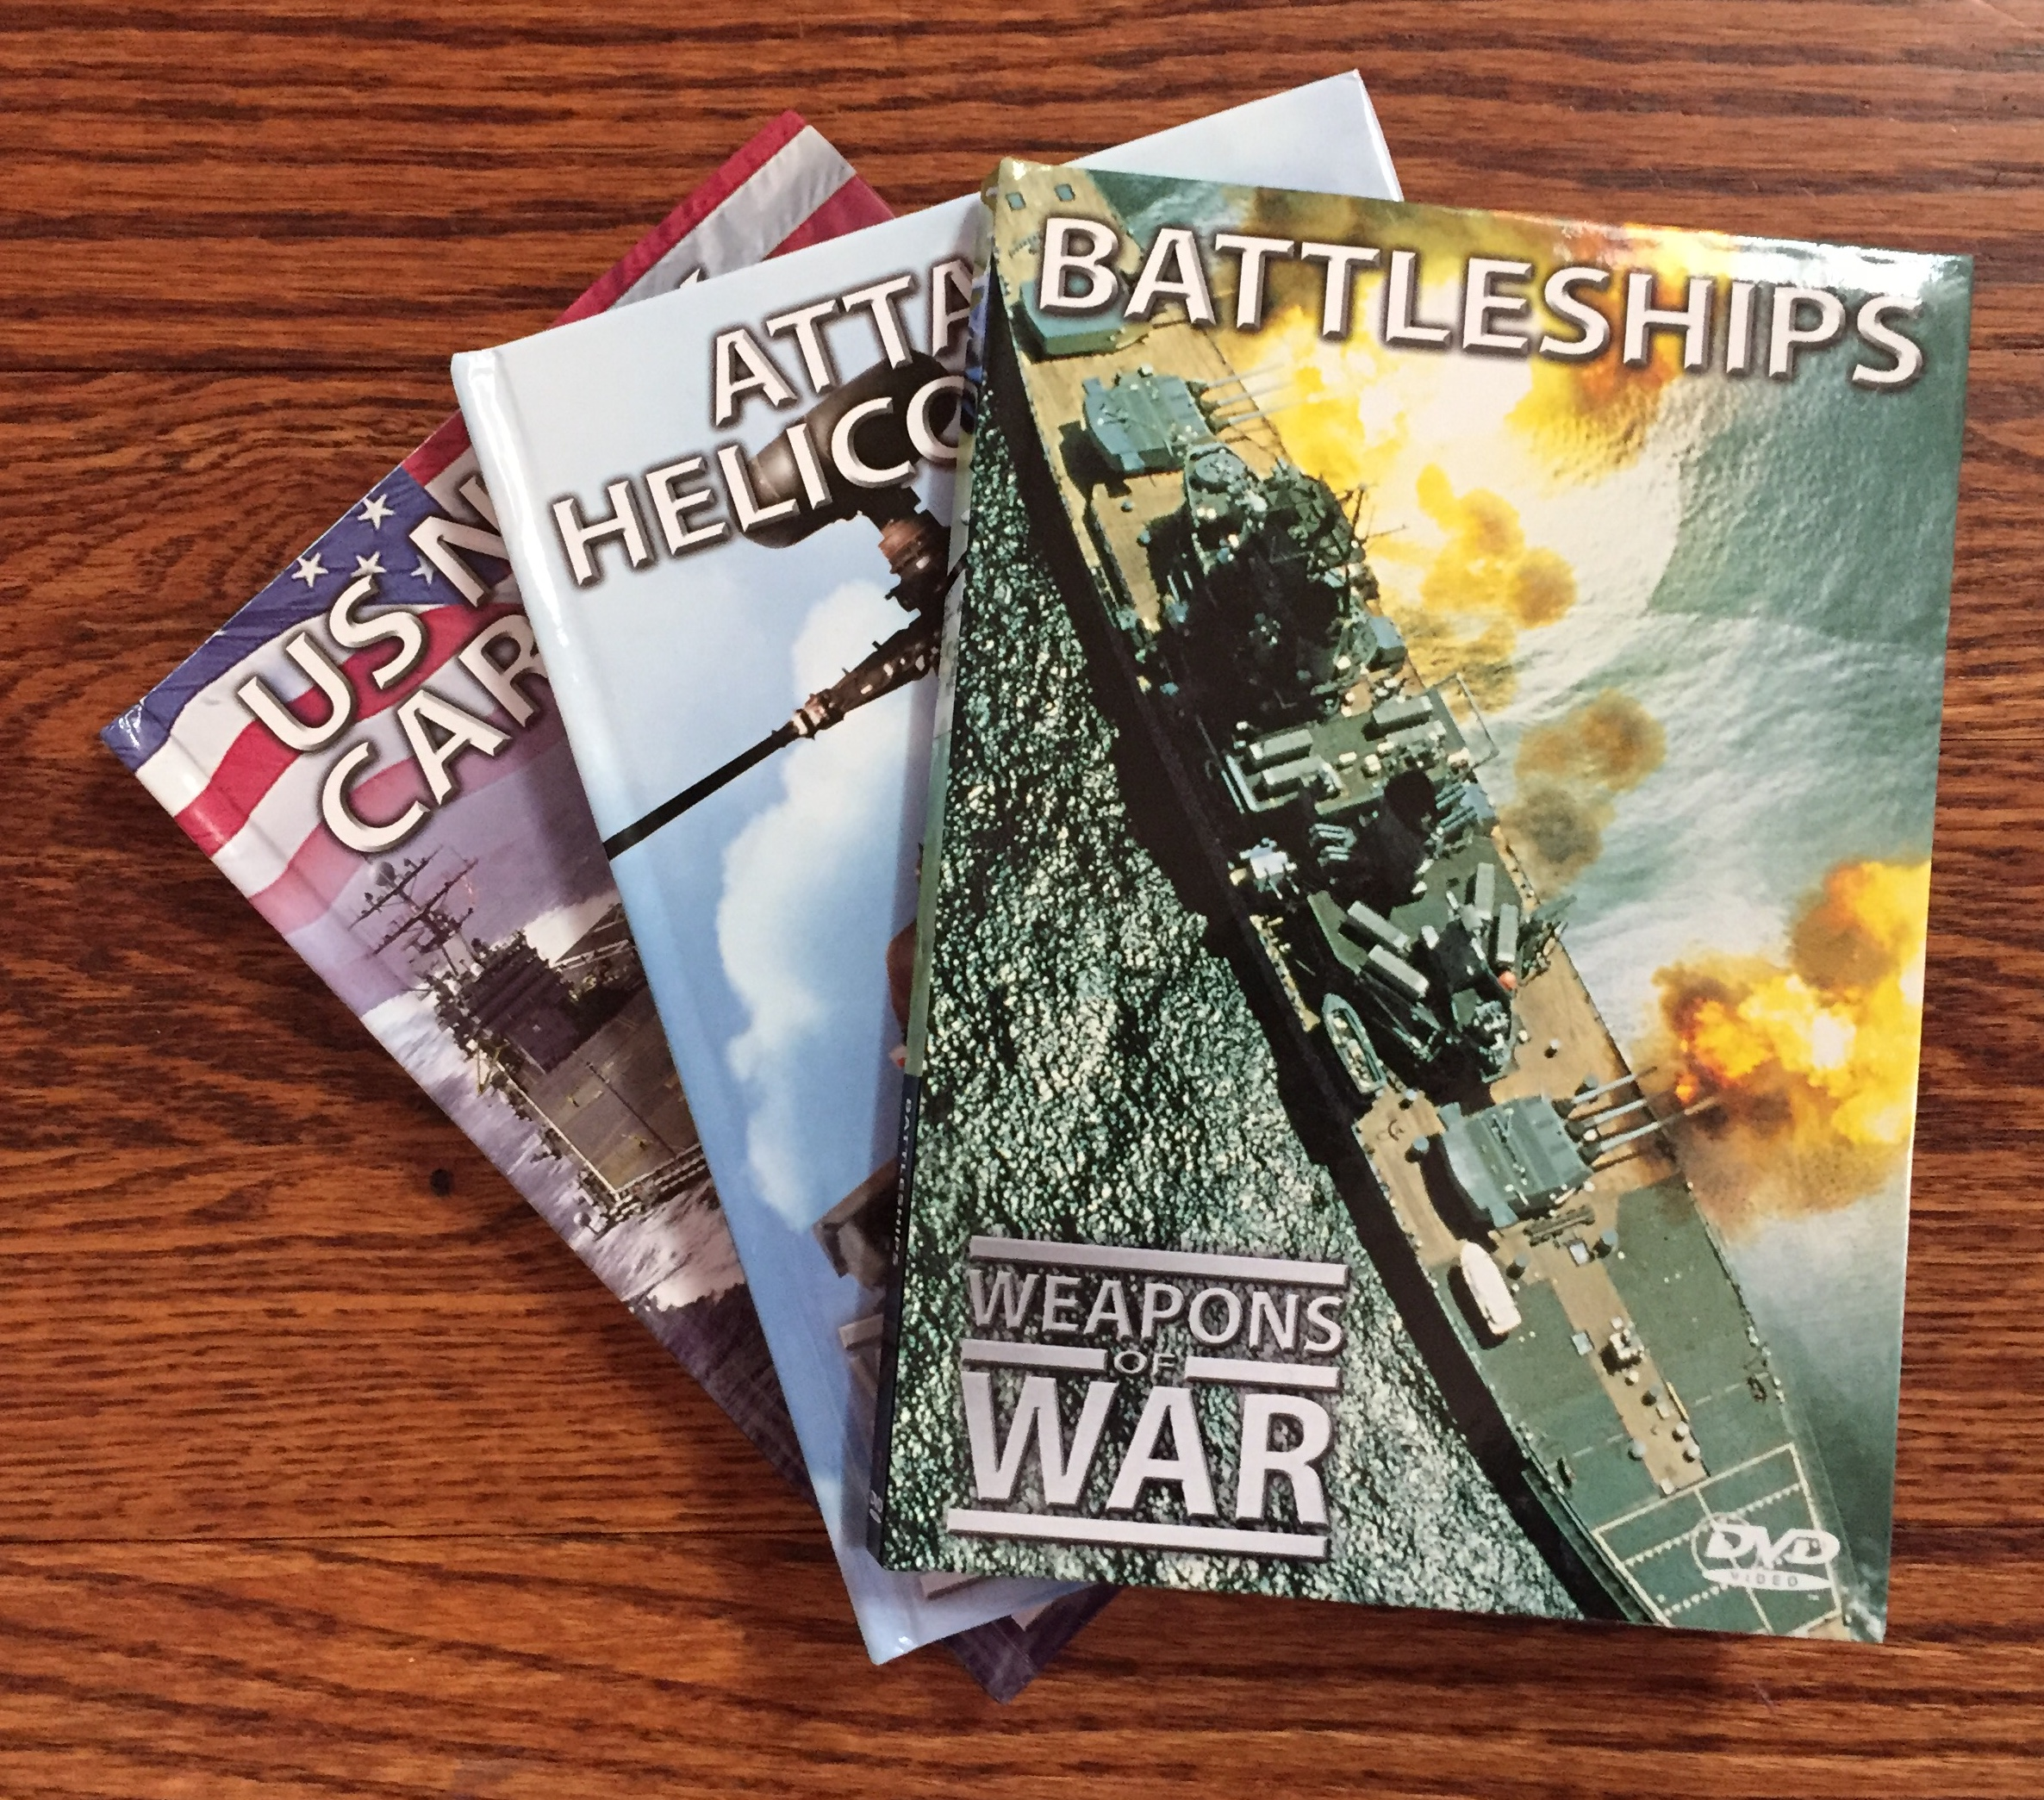 Weapons of War books with DVD